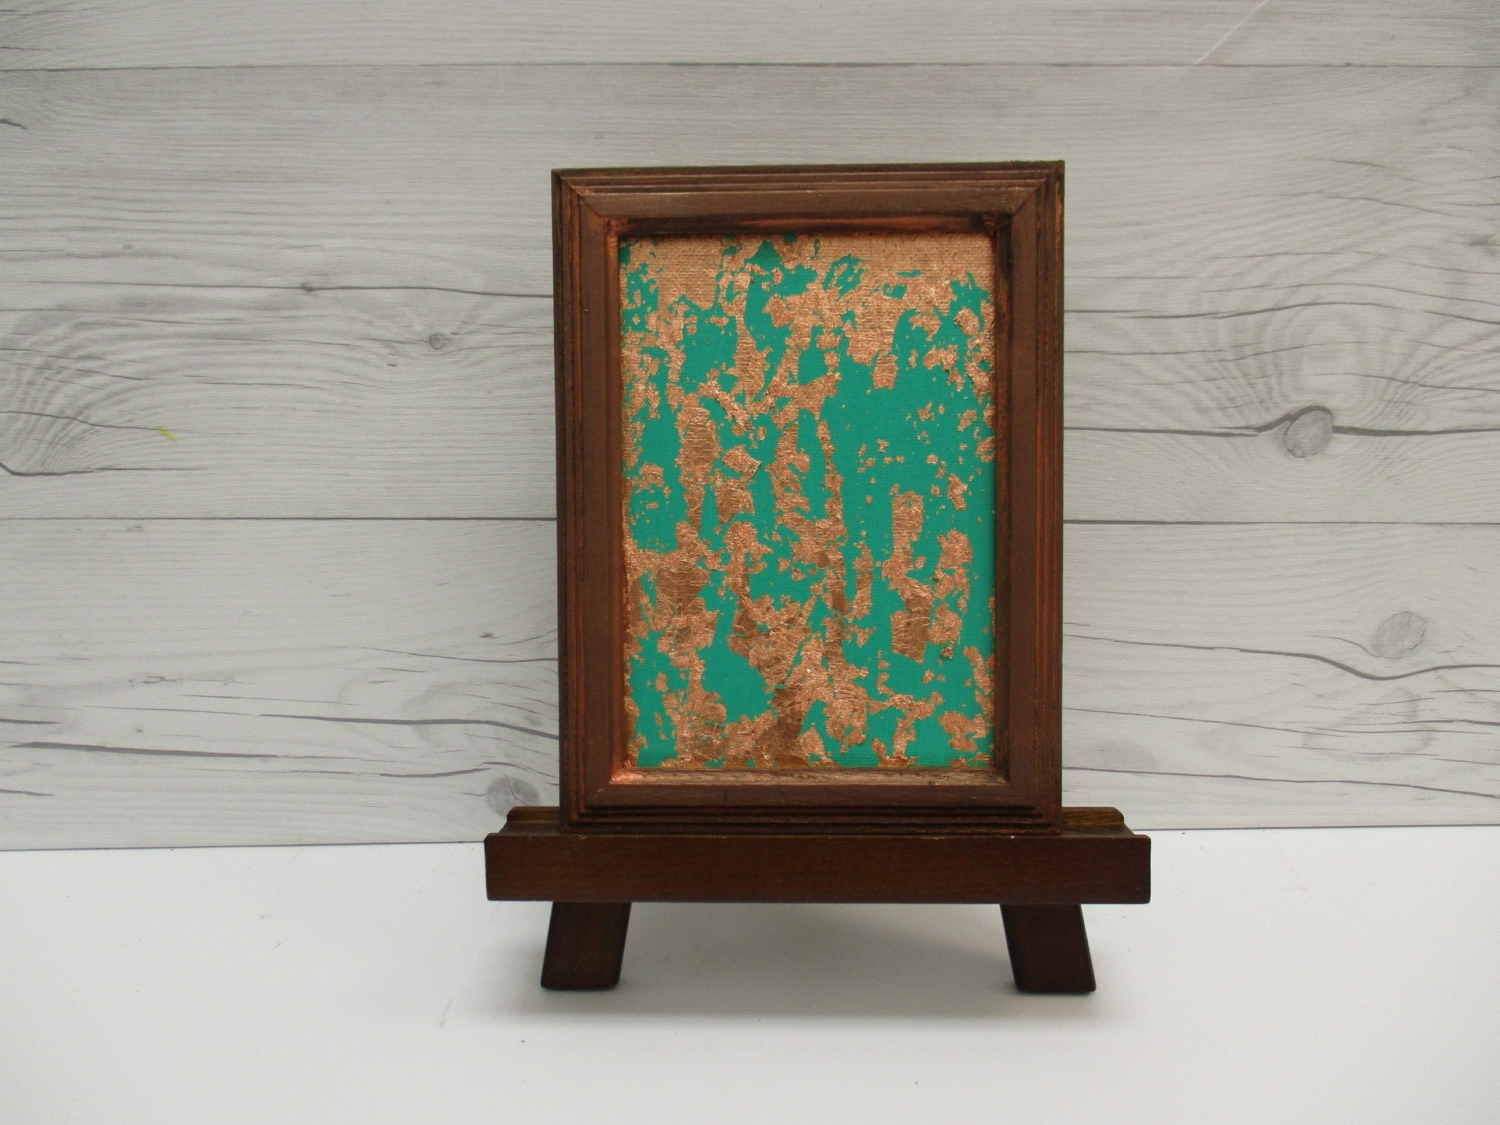 Affordable Framed Wall Art Pertaining To Recent Copper Wall Art, Copper Leaf, Emerald Green Abstract, Green (Gallery 5 of 15)